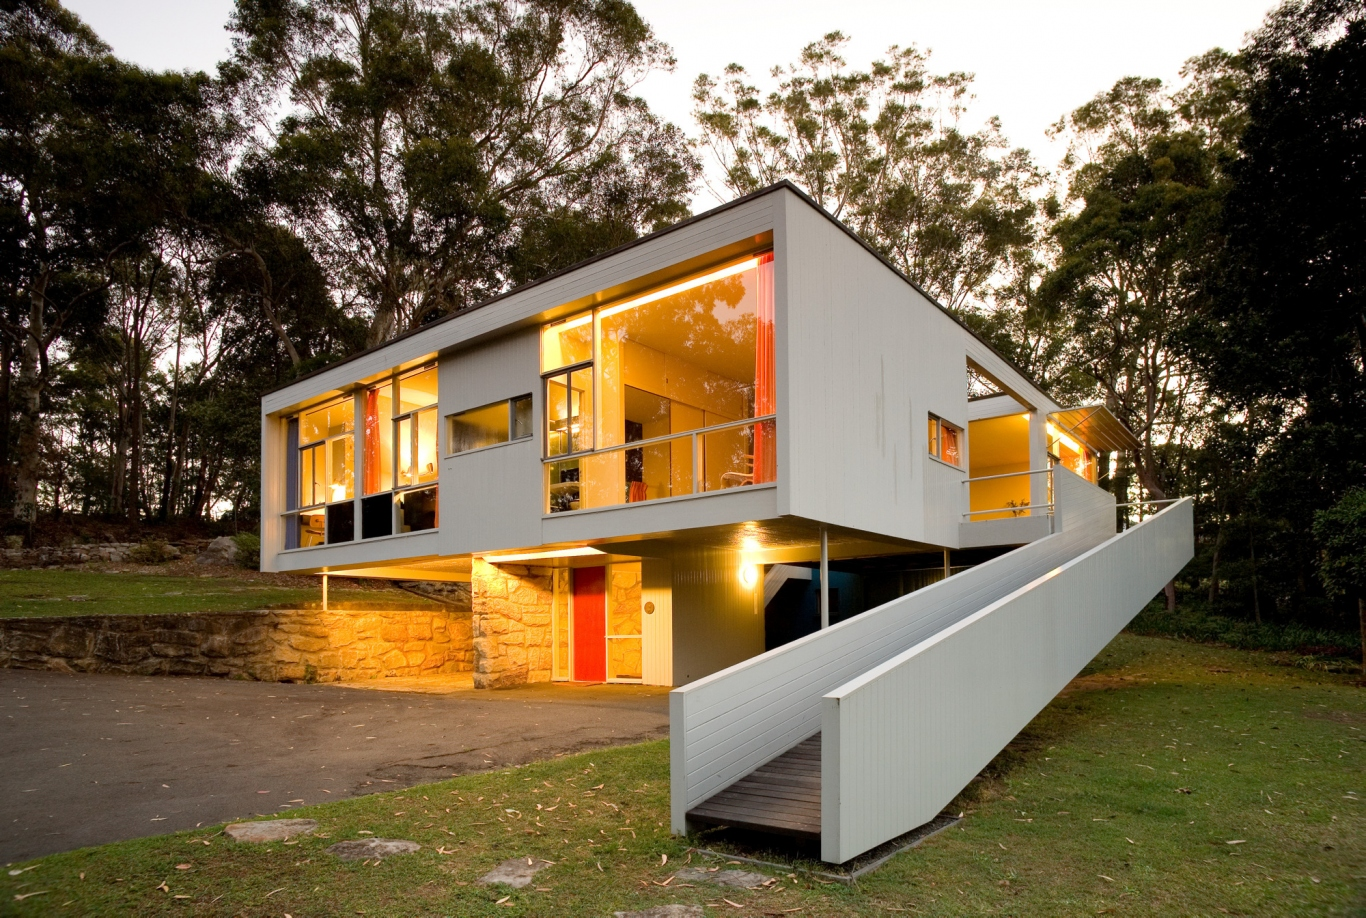 Modernist house with lights on against bush backdrop.